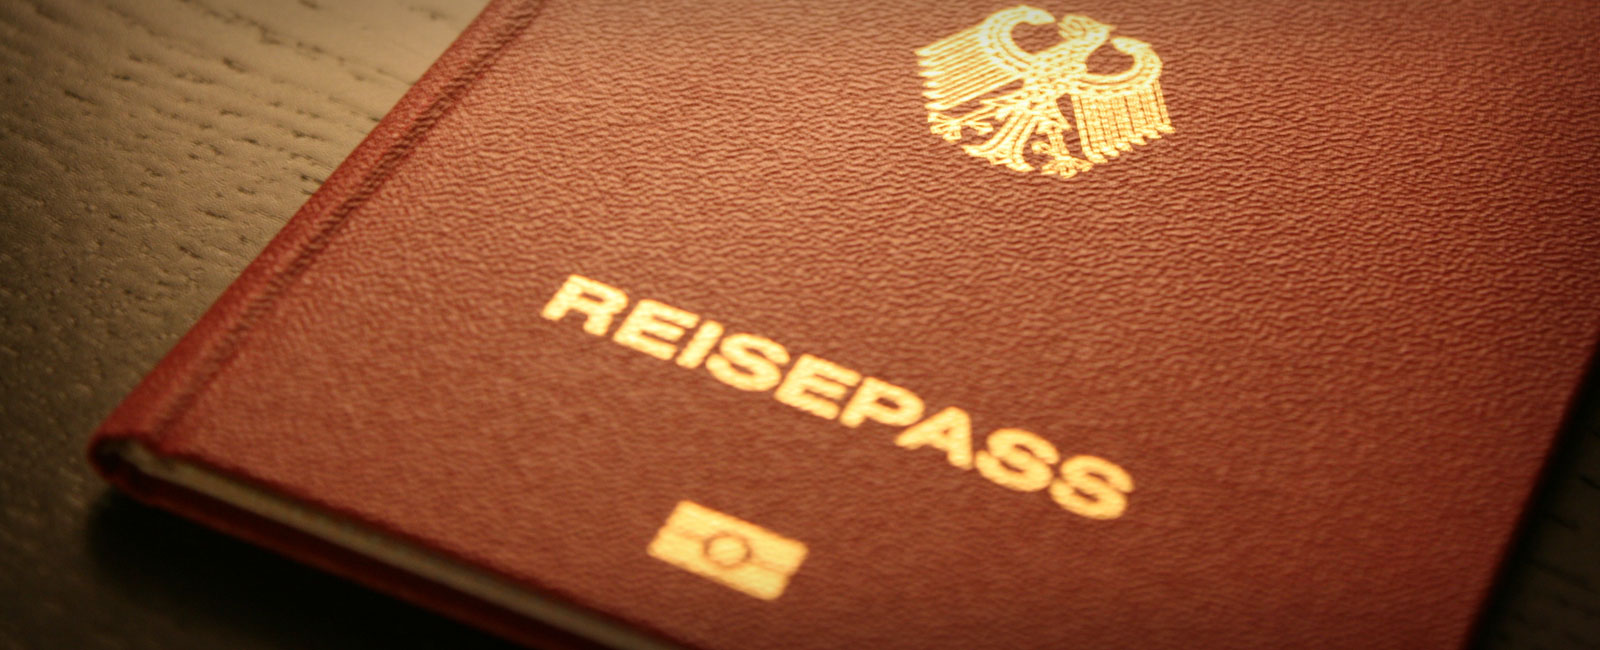 Reisepass, Visum & Co.